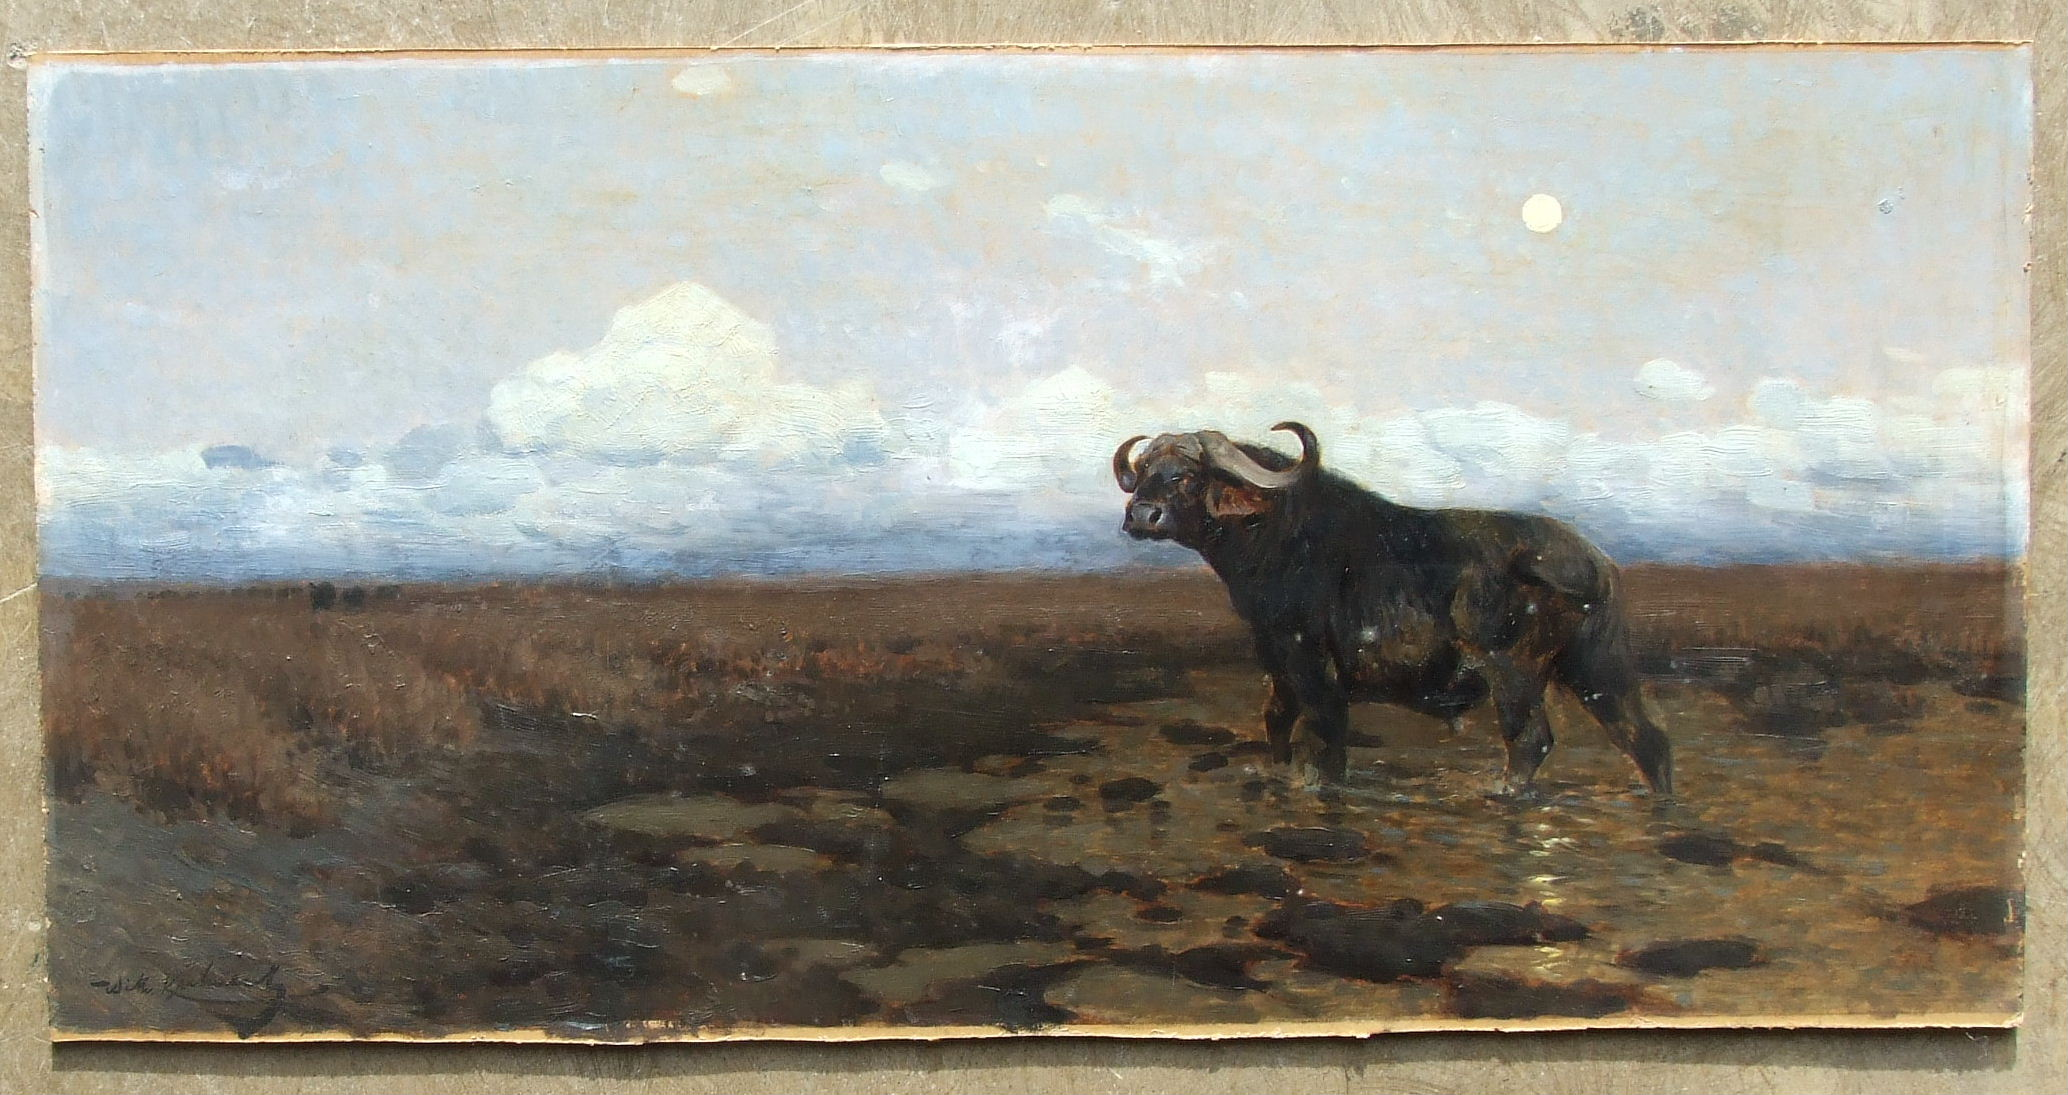 Lot 66 - Friedrich Wilhelm Kuhnert (1865-1926) IN THE MARSH - A CAPE BUFFALO STANDING IN A MARSH, WITH